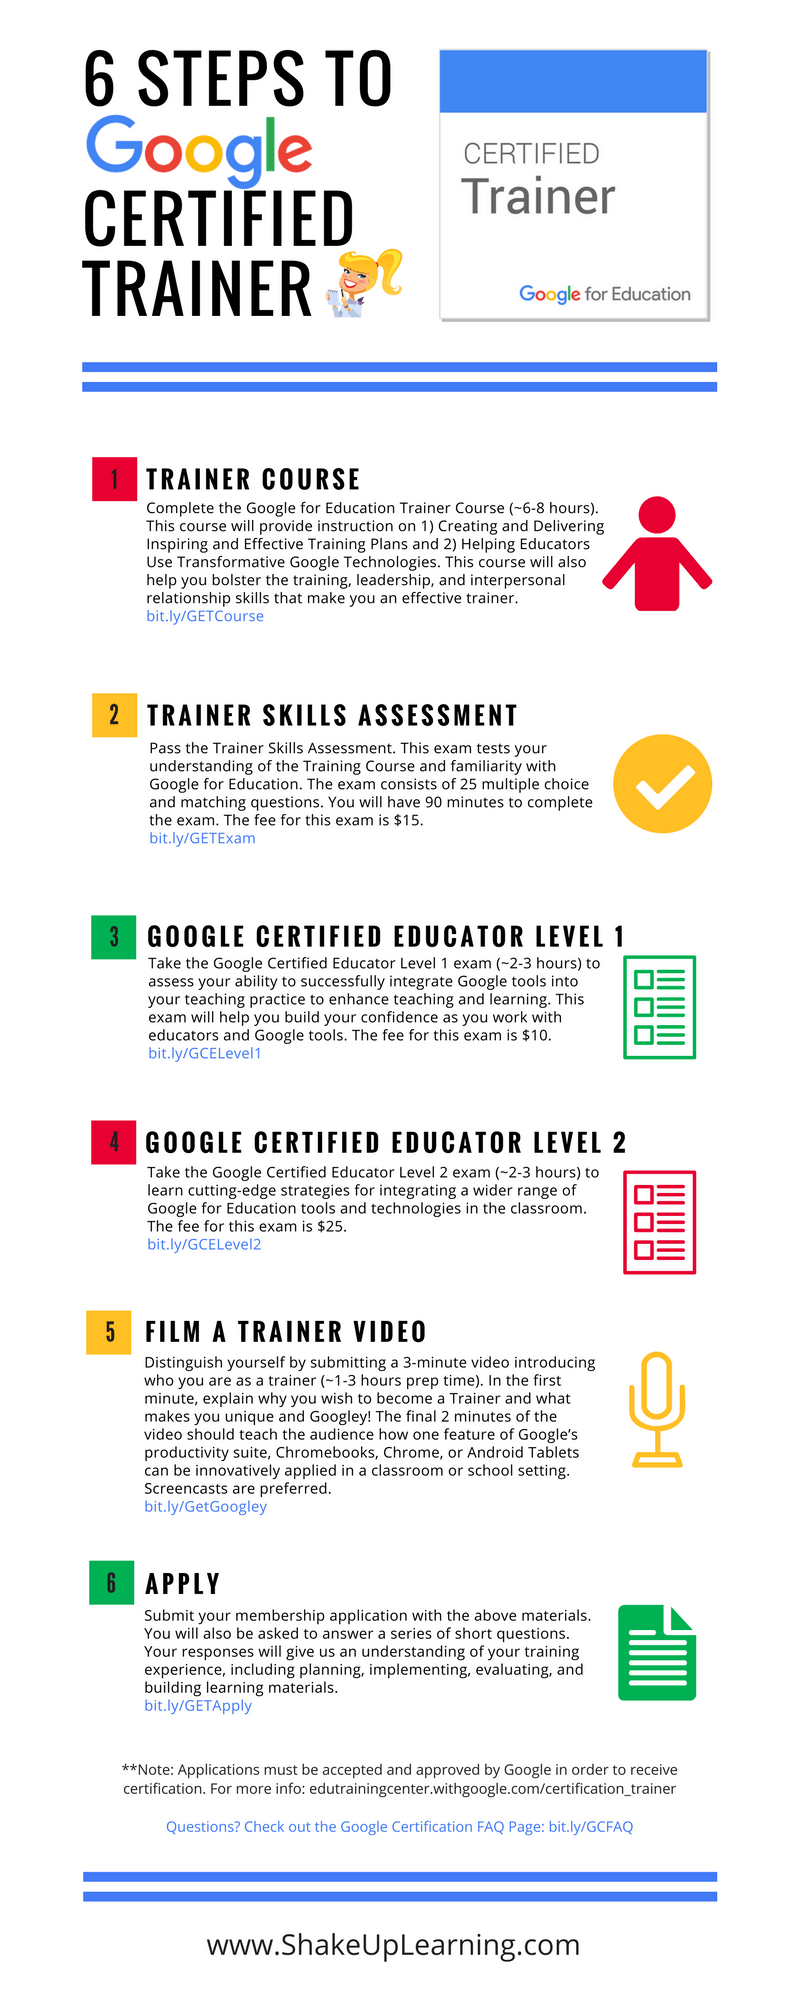 How to Be e a Google Certified Trainer